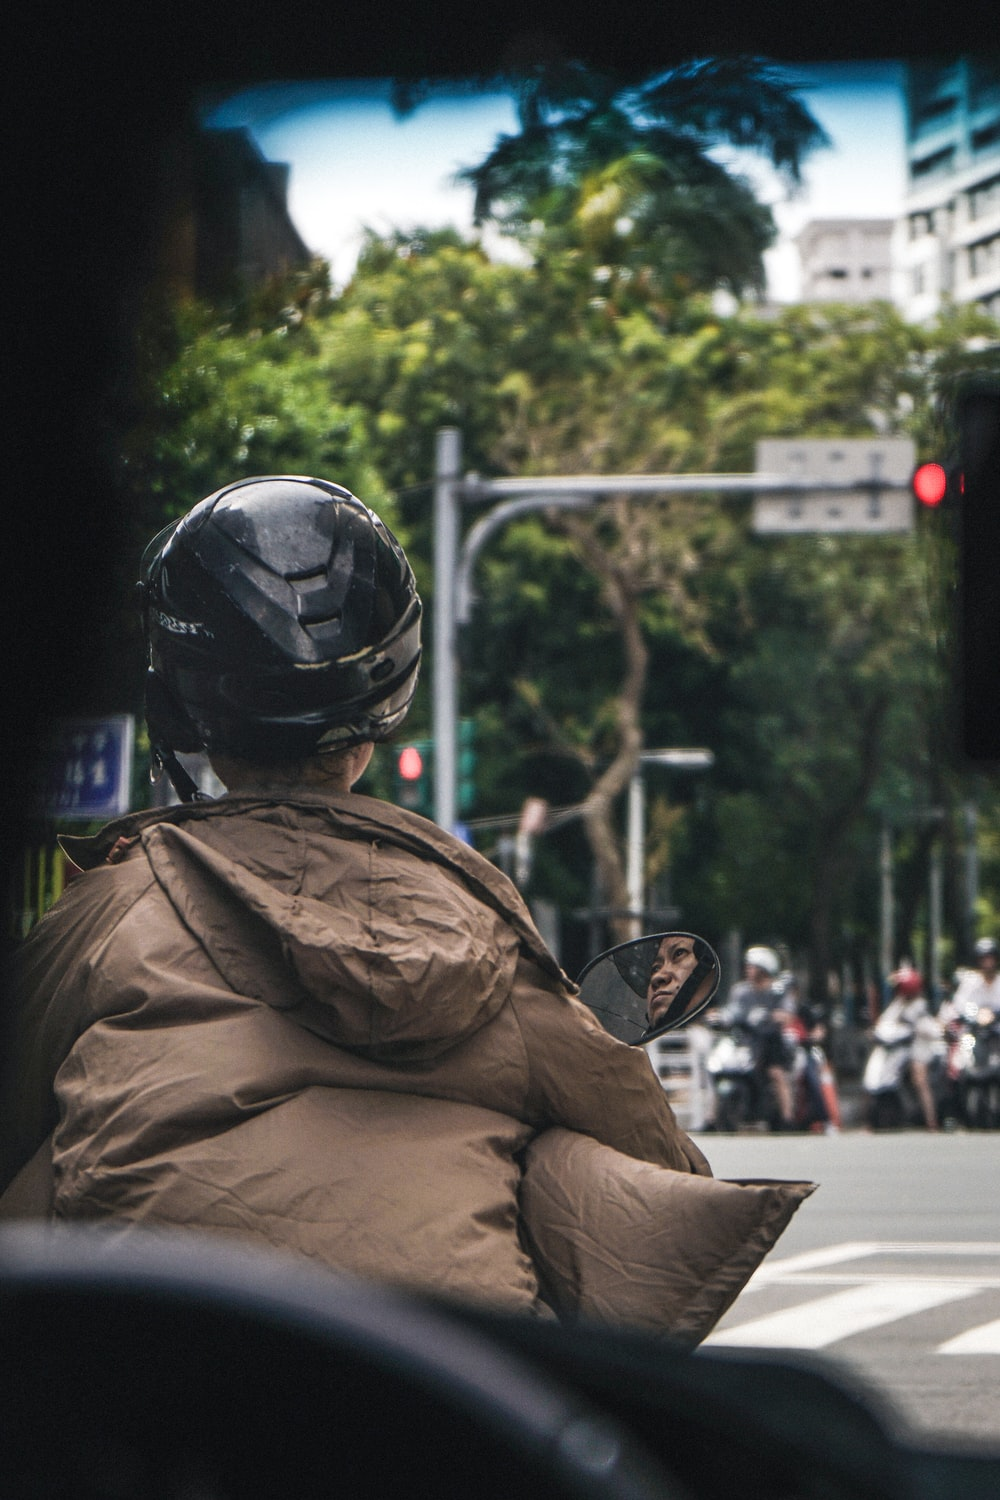 selective focus photography of person riding motorcycle near road during daytime